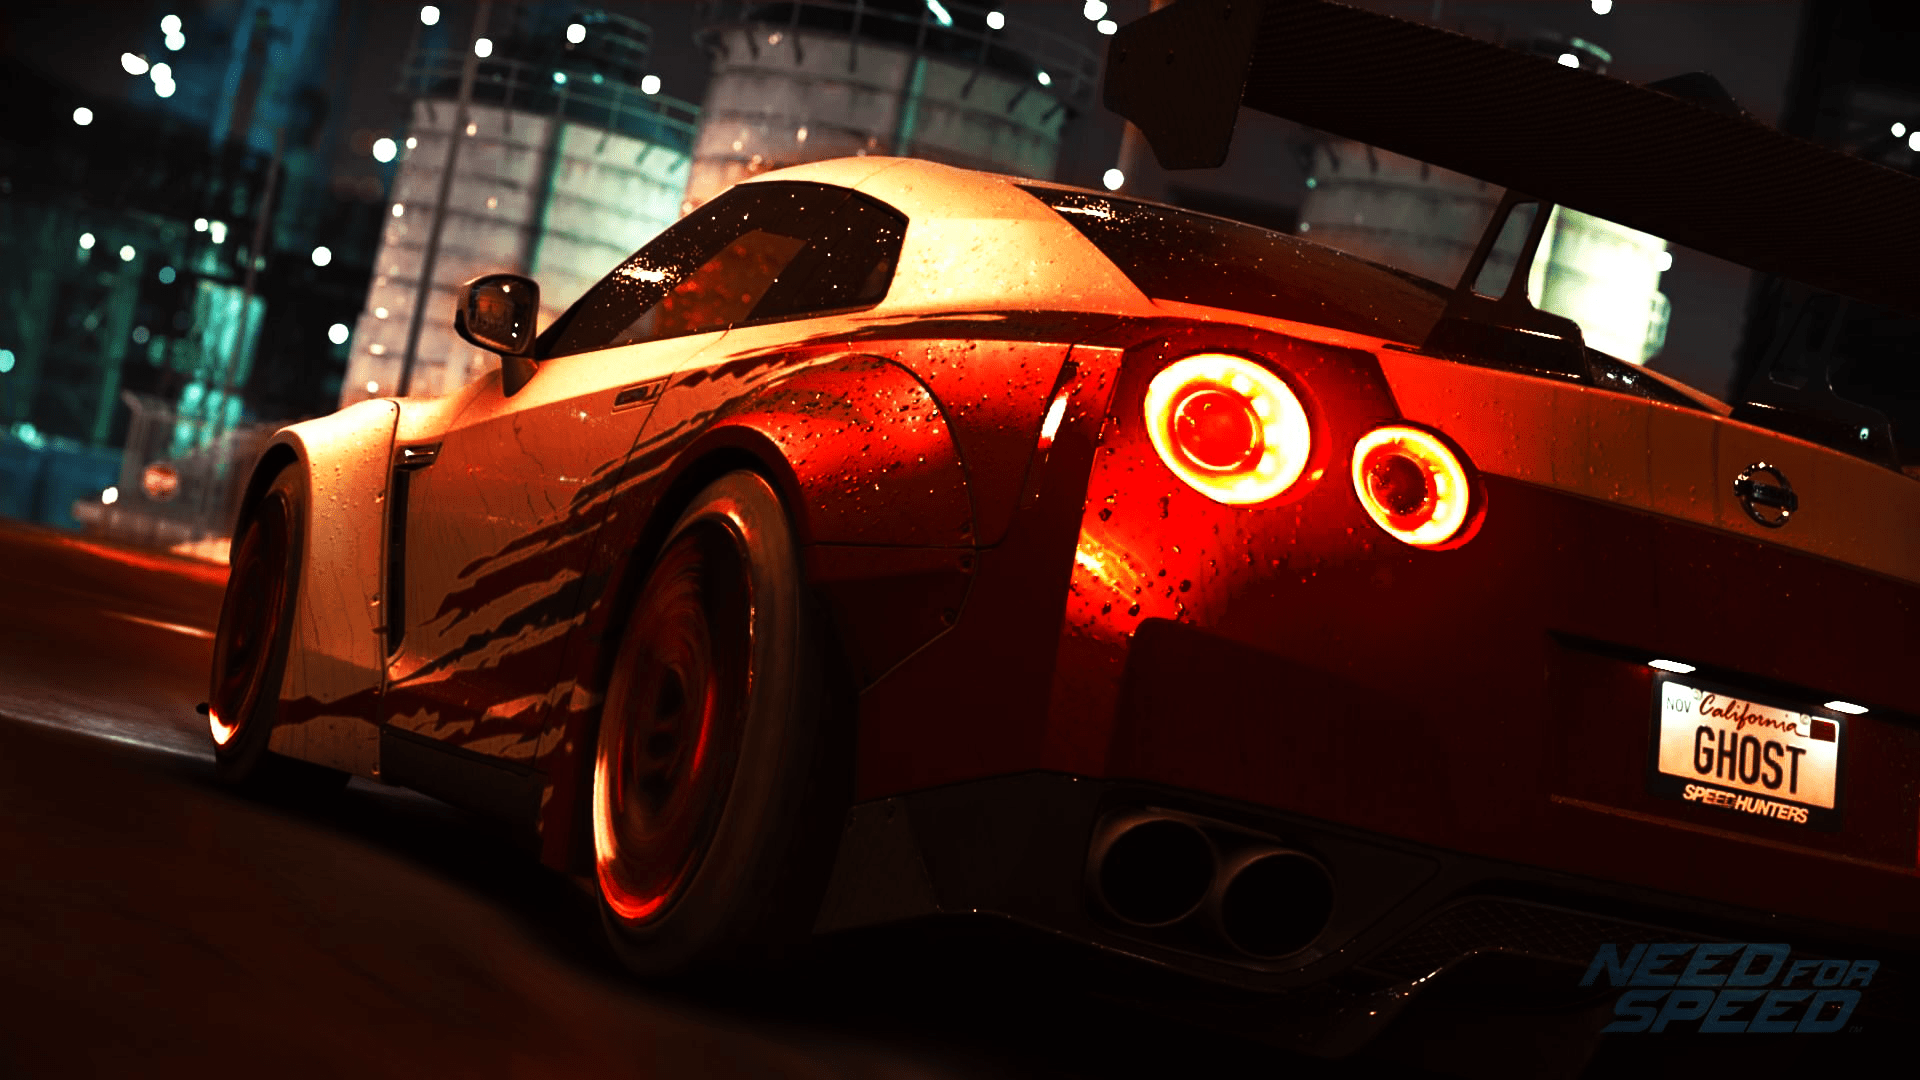 Race Car Wallpaper 1080p Need For Speed 2015 Full Hd Wallpaper And Background Image